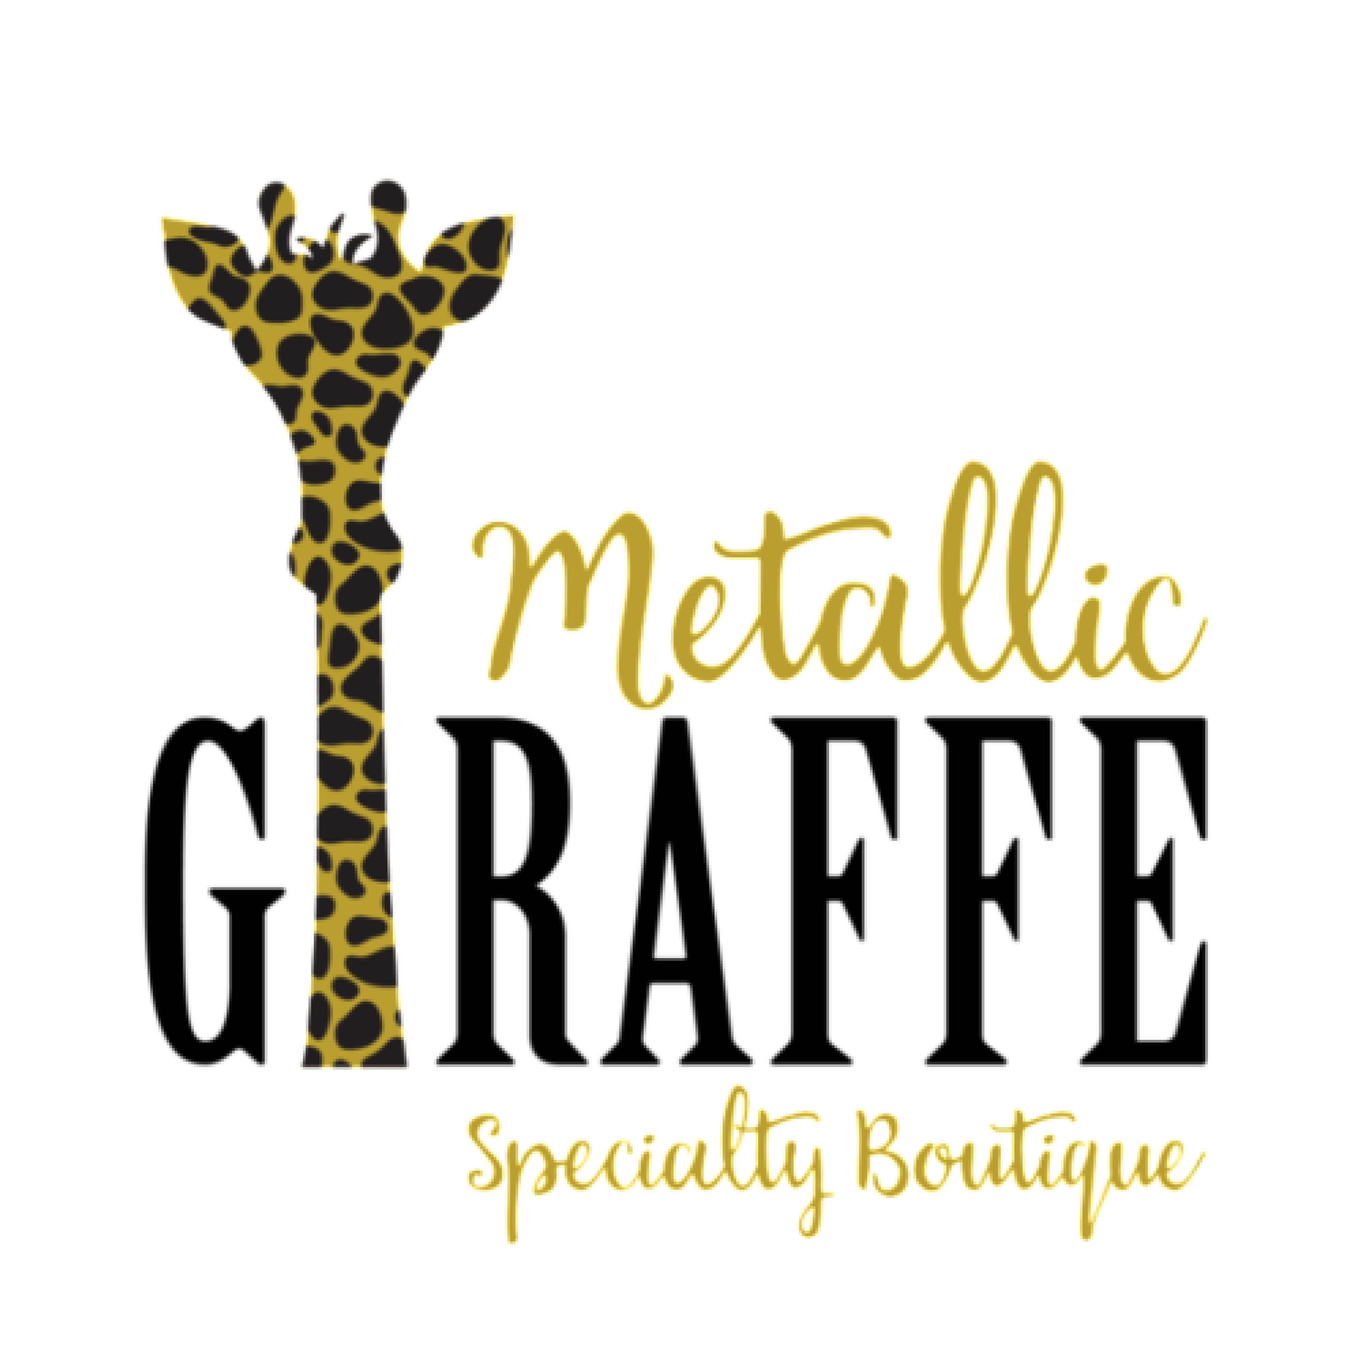 Support Metallic Giraffe During These Challenging Times